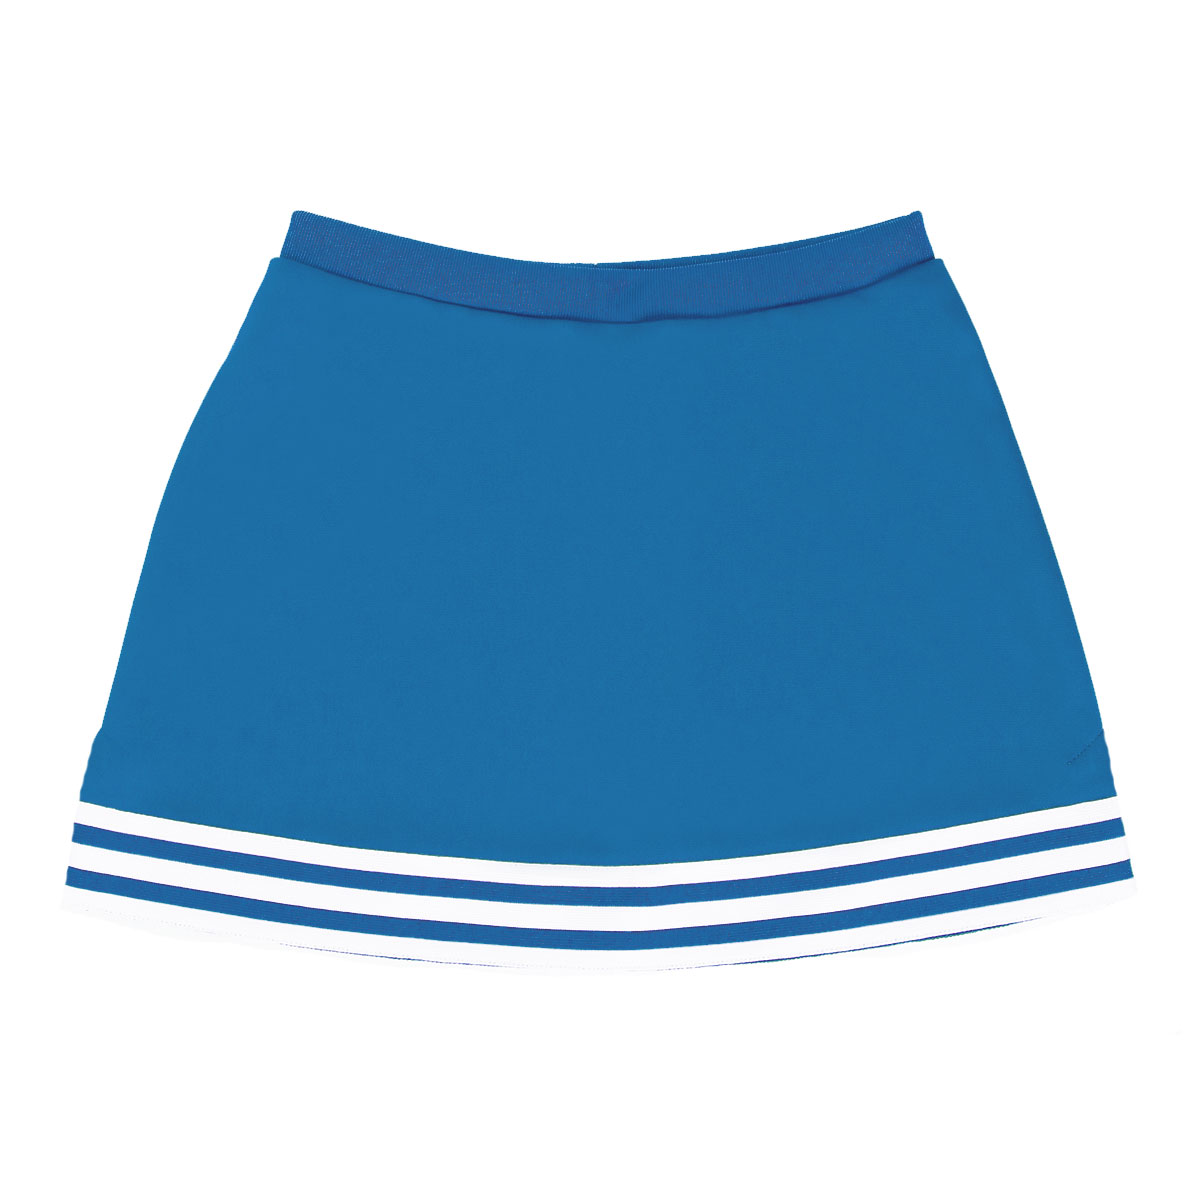 Stock A-Line Cheer Uniform Skirt